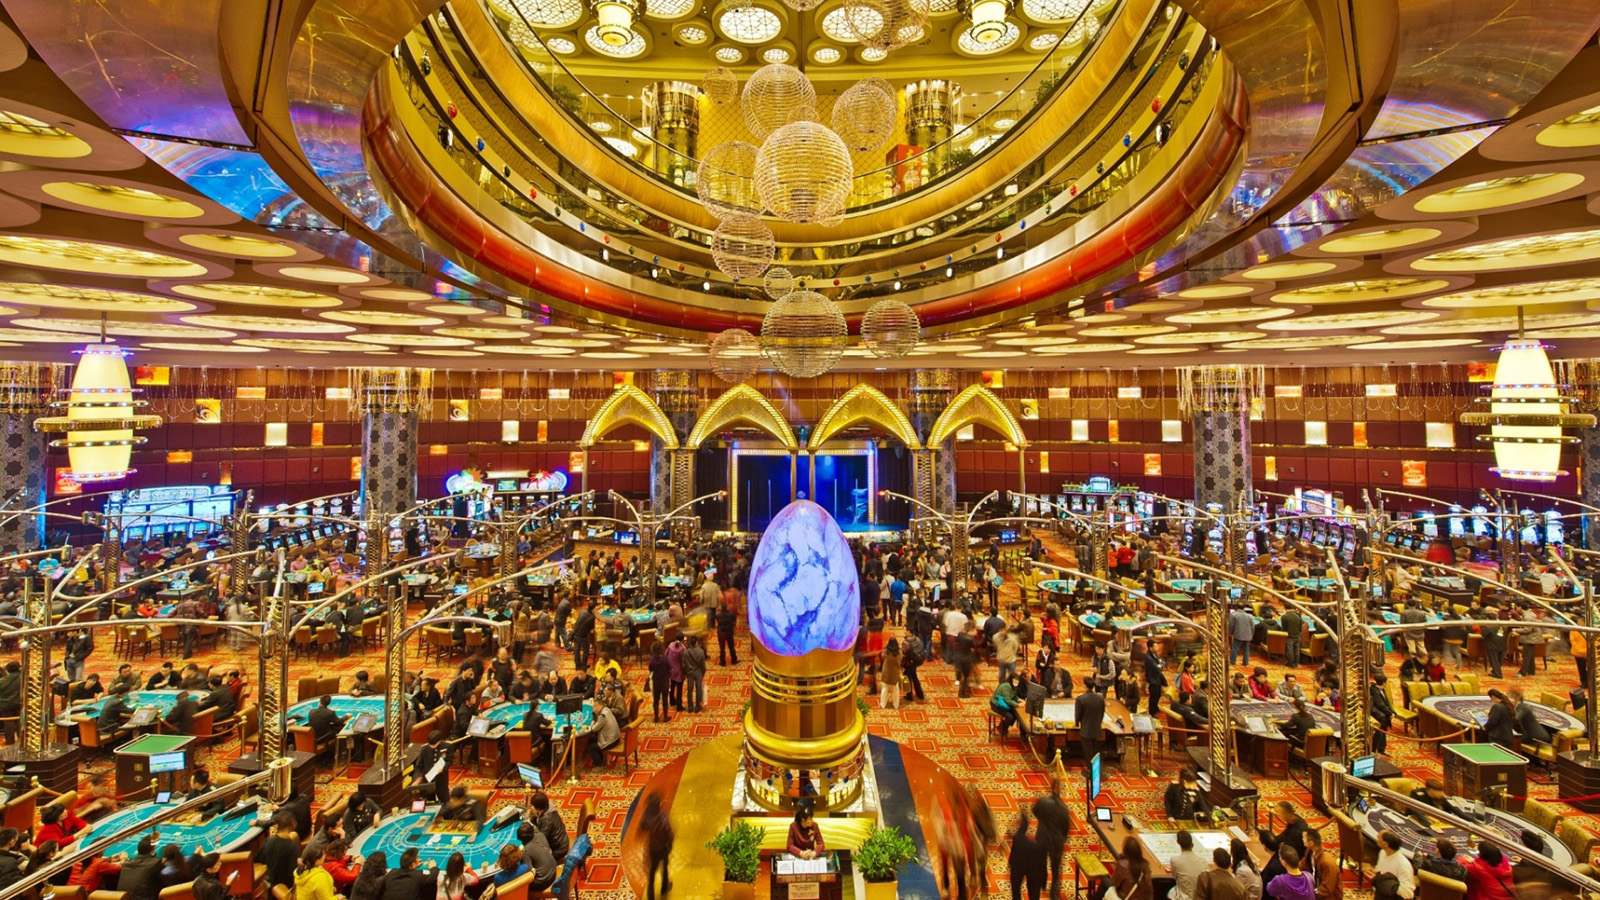 Macaus best casinos CNN Travel 1600x900